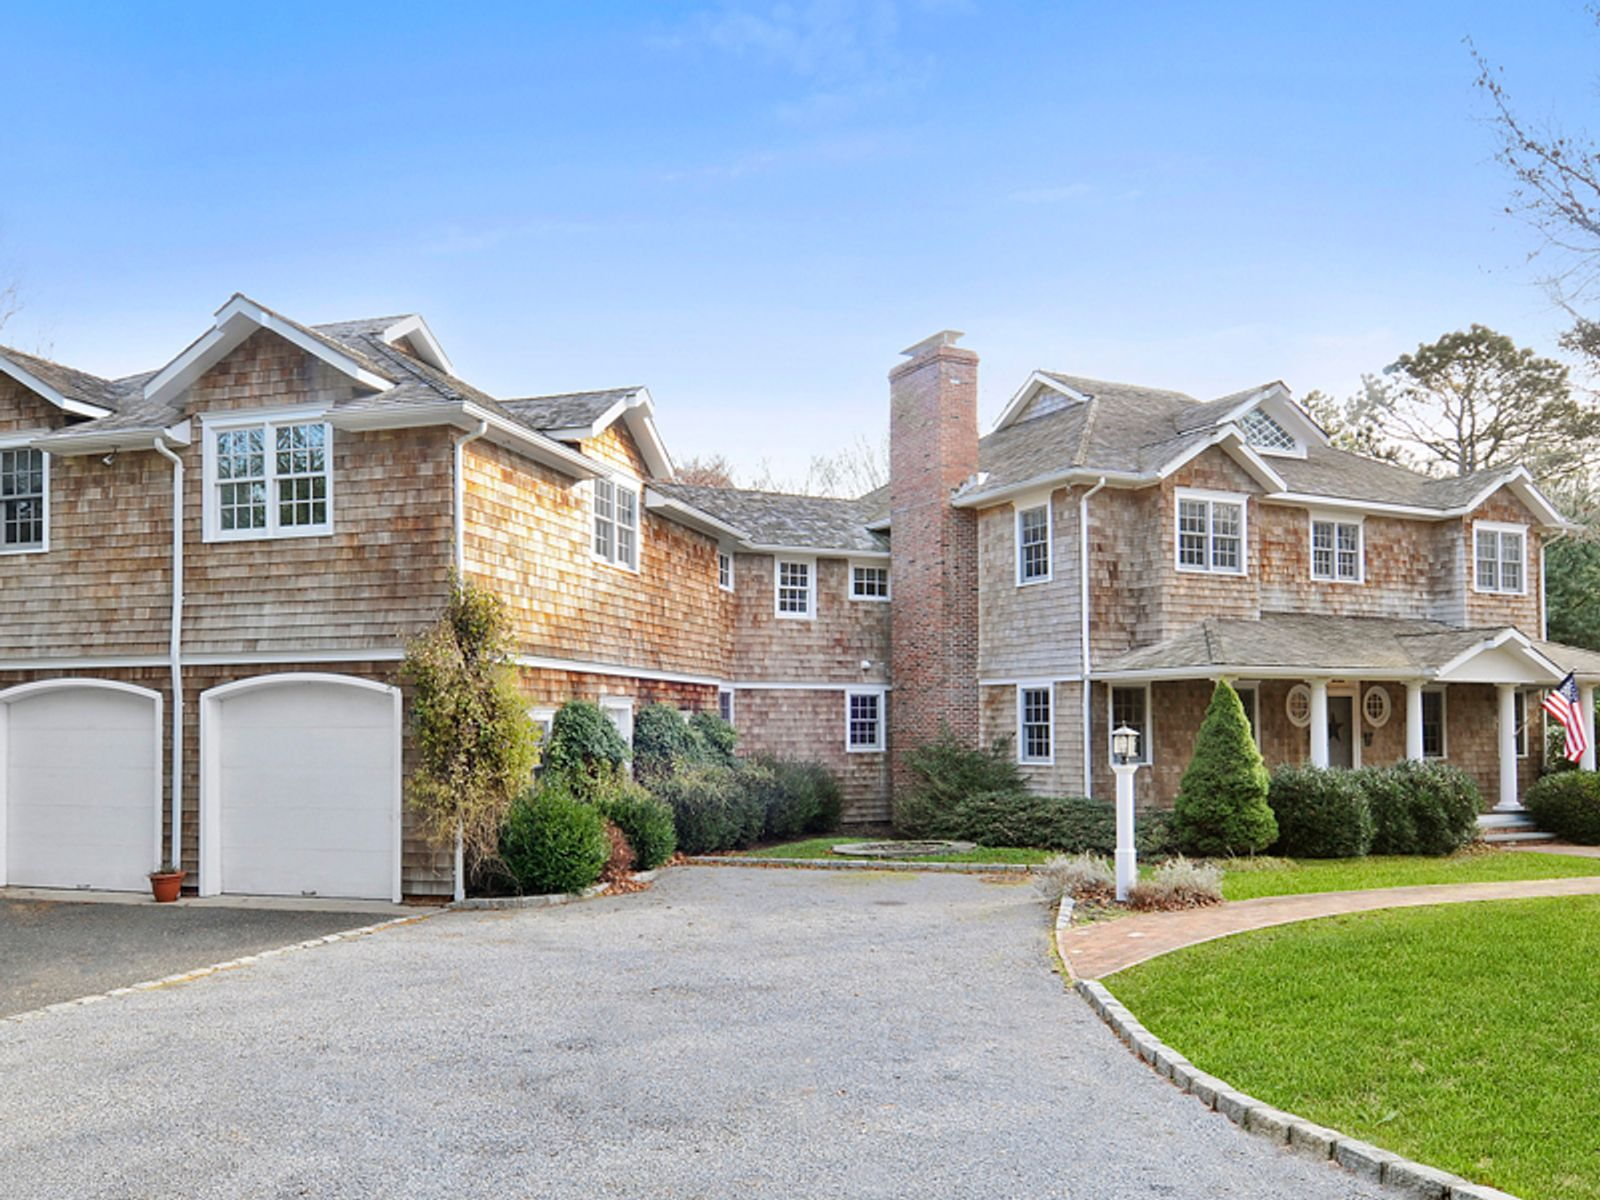 A Spacious Custom Home - in contract, East Hampton NY Single Family Home - Hamptons Real Estate